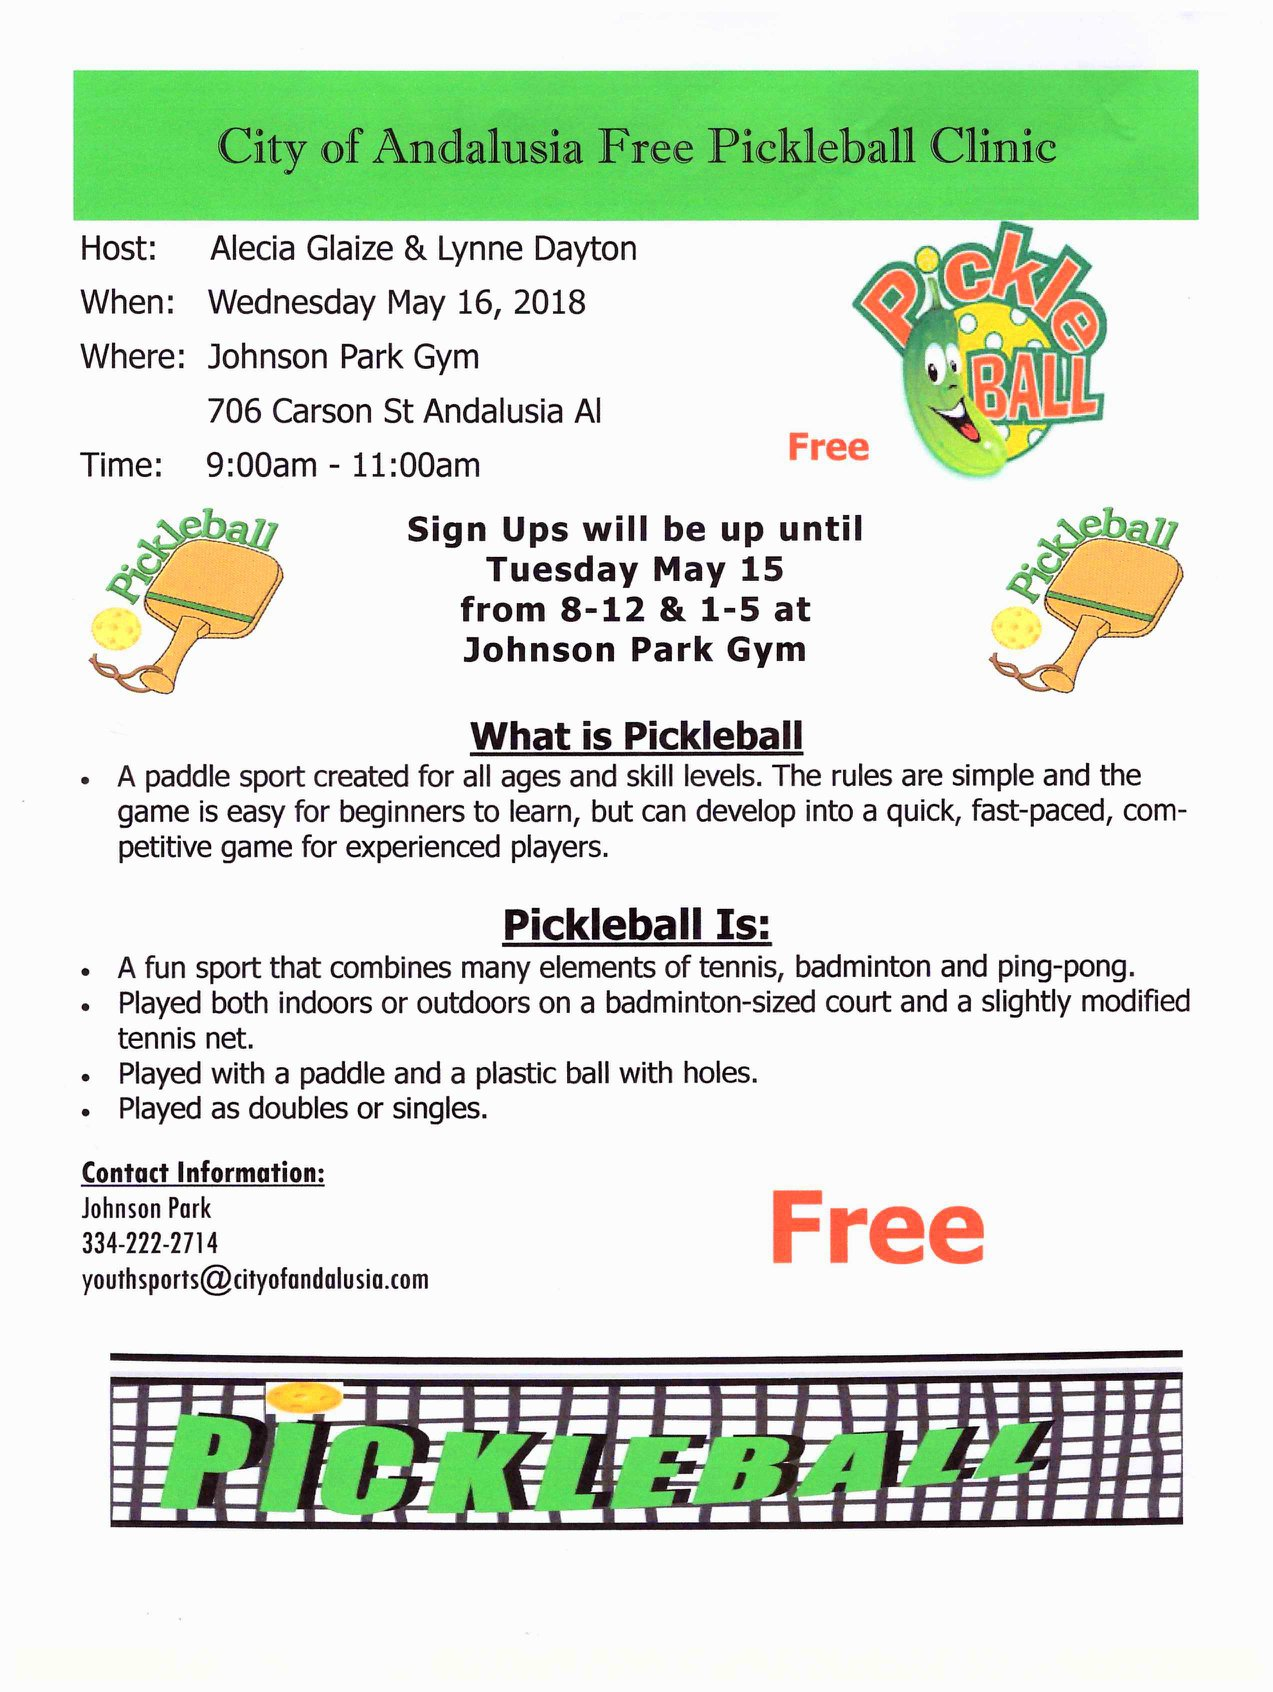 20180515 City of Andalusia Free Pickleball Clinic